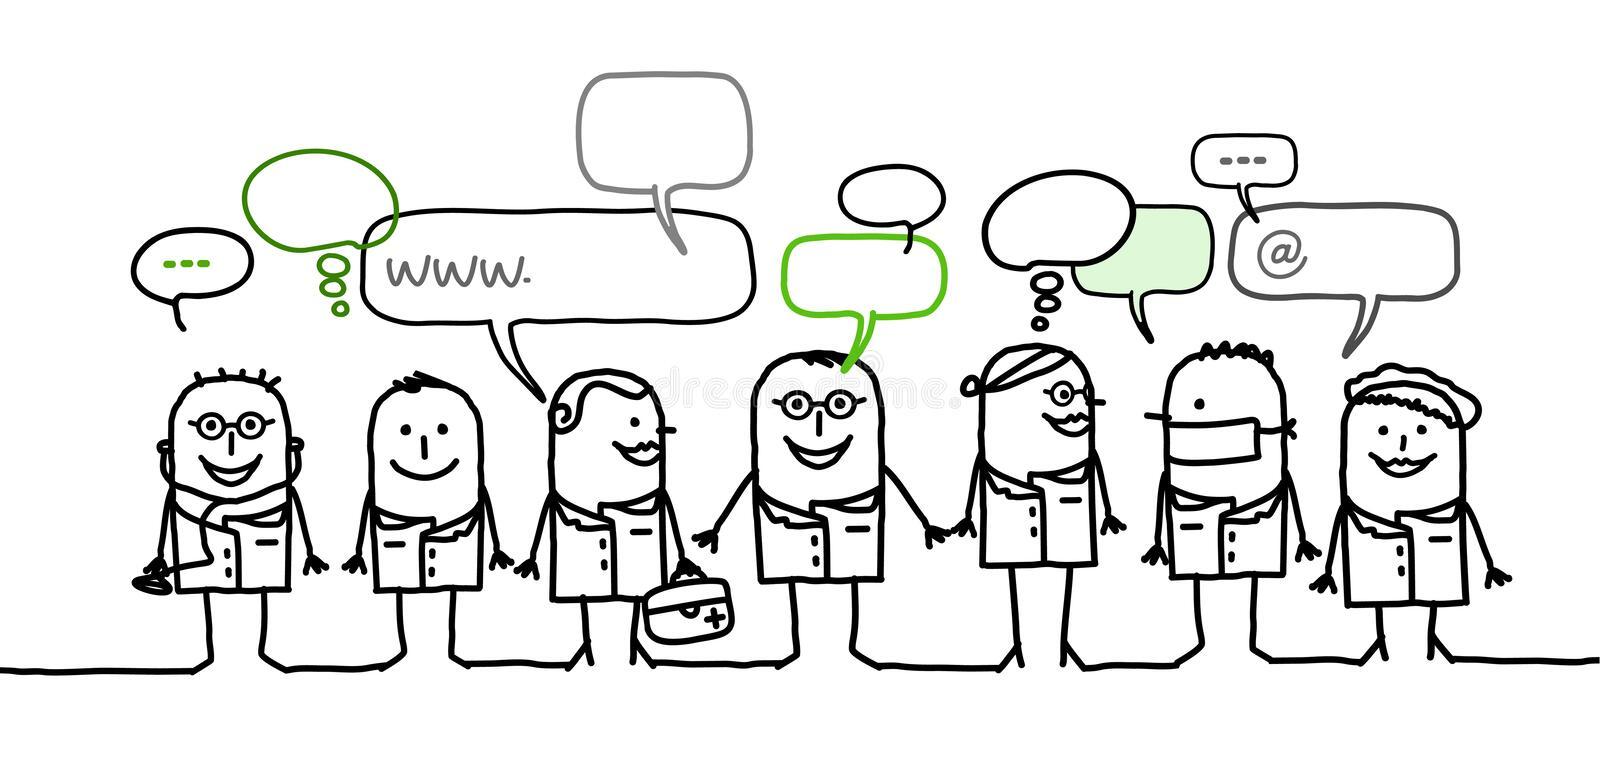 Medical people & social network. Hand drawn cartoon characters - medical people & social network royalty free illustration